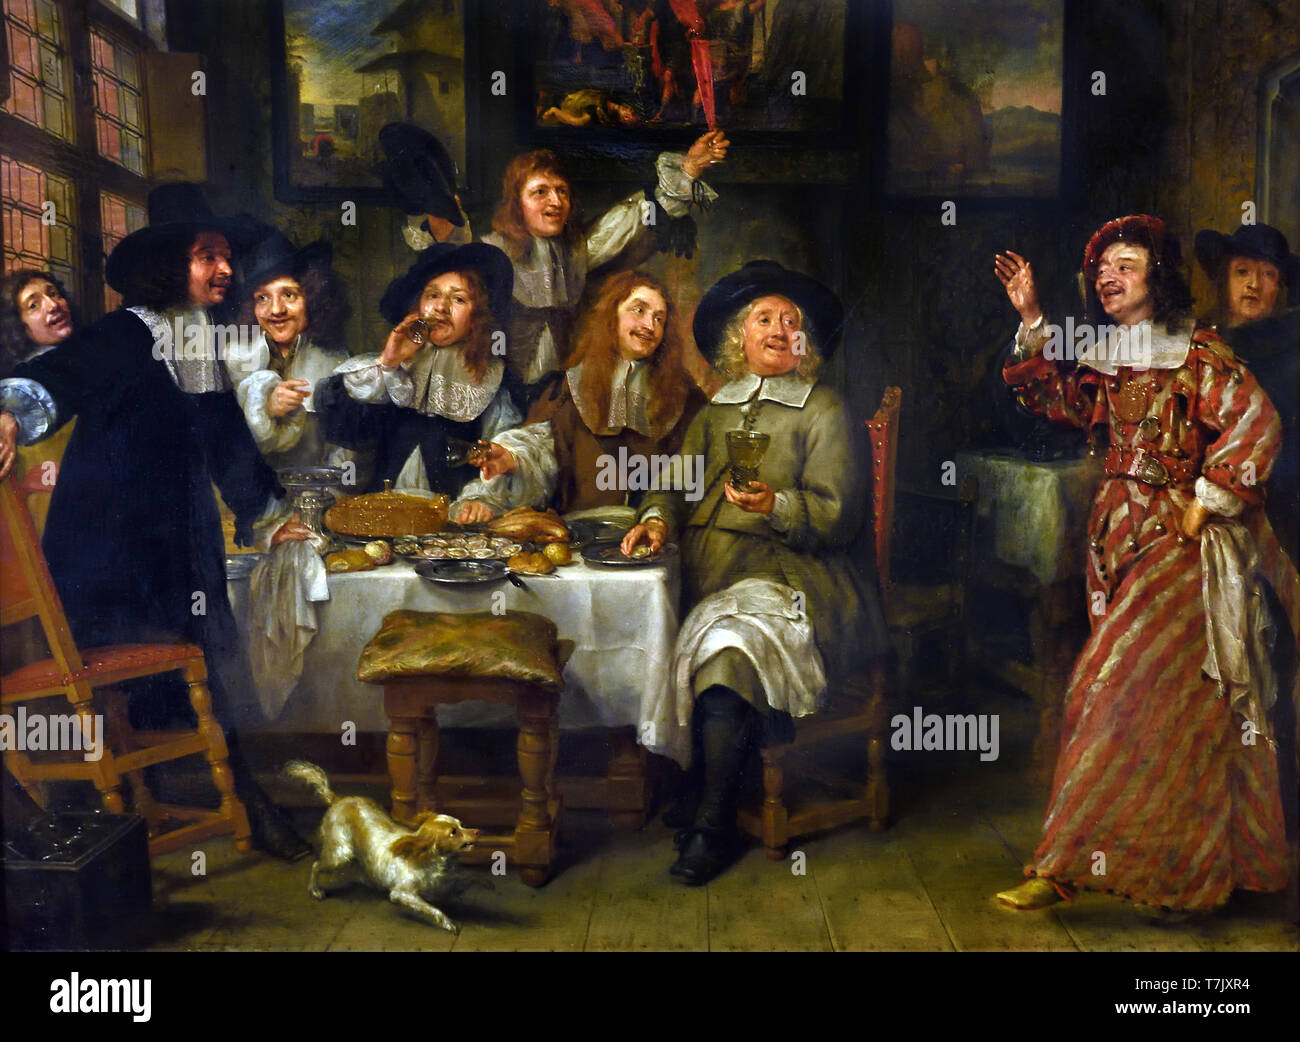 Repas d` artistes - Meal of artists 1660  by Gonzales Coques 1614 - 1684 Flemish Belgian Belgium Stock Photo